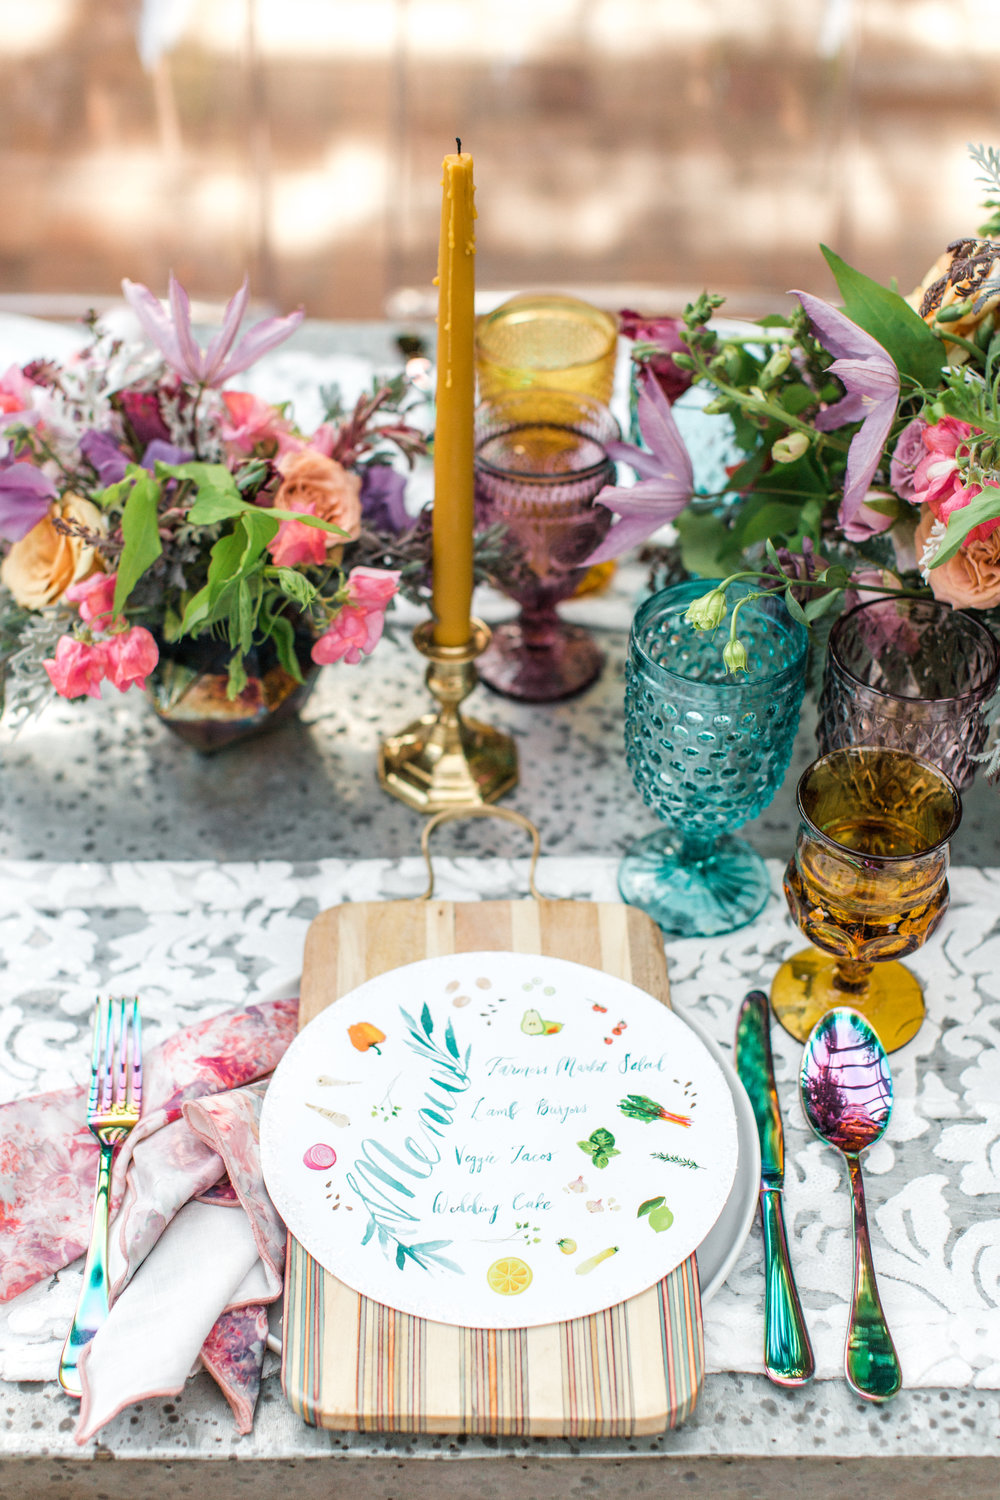 Anna Delores Photography_Wild Heart Events 05.16.17-9714.jpg